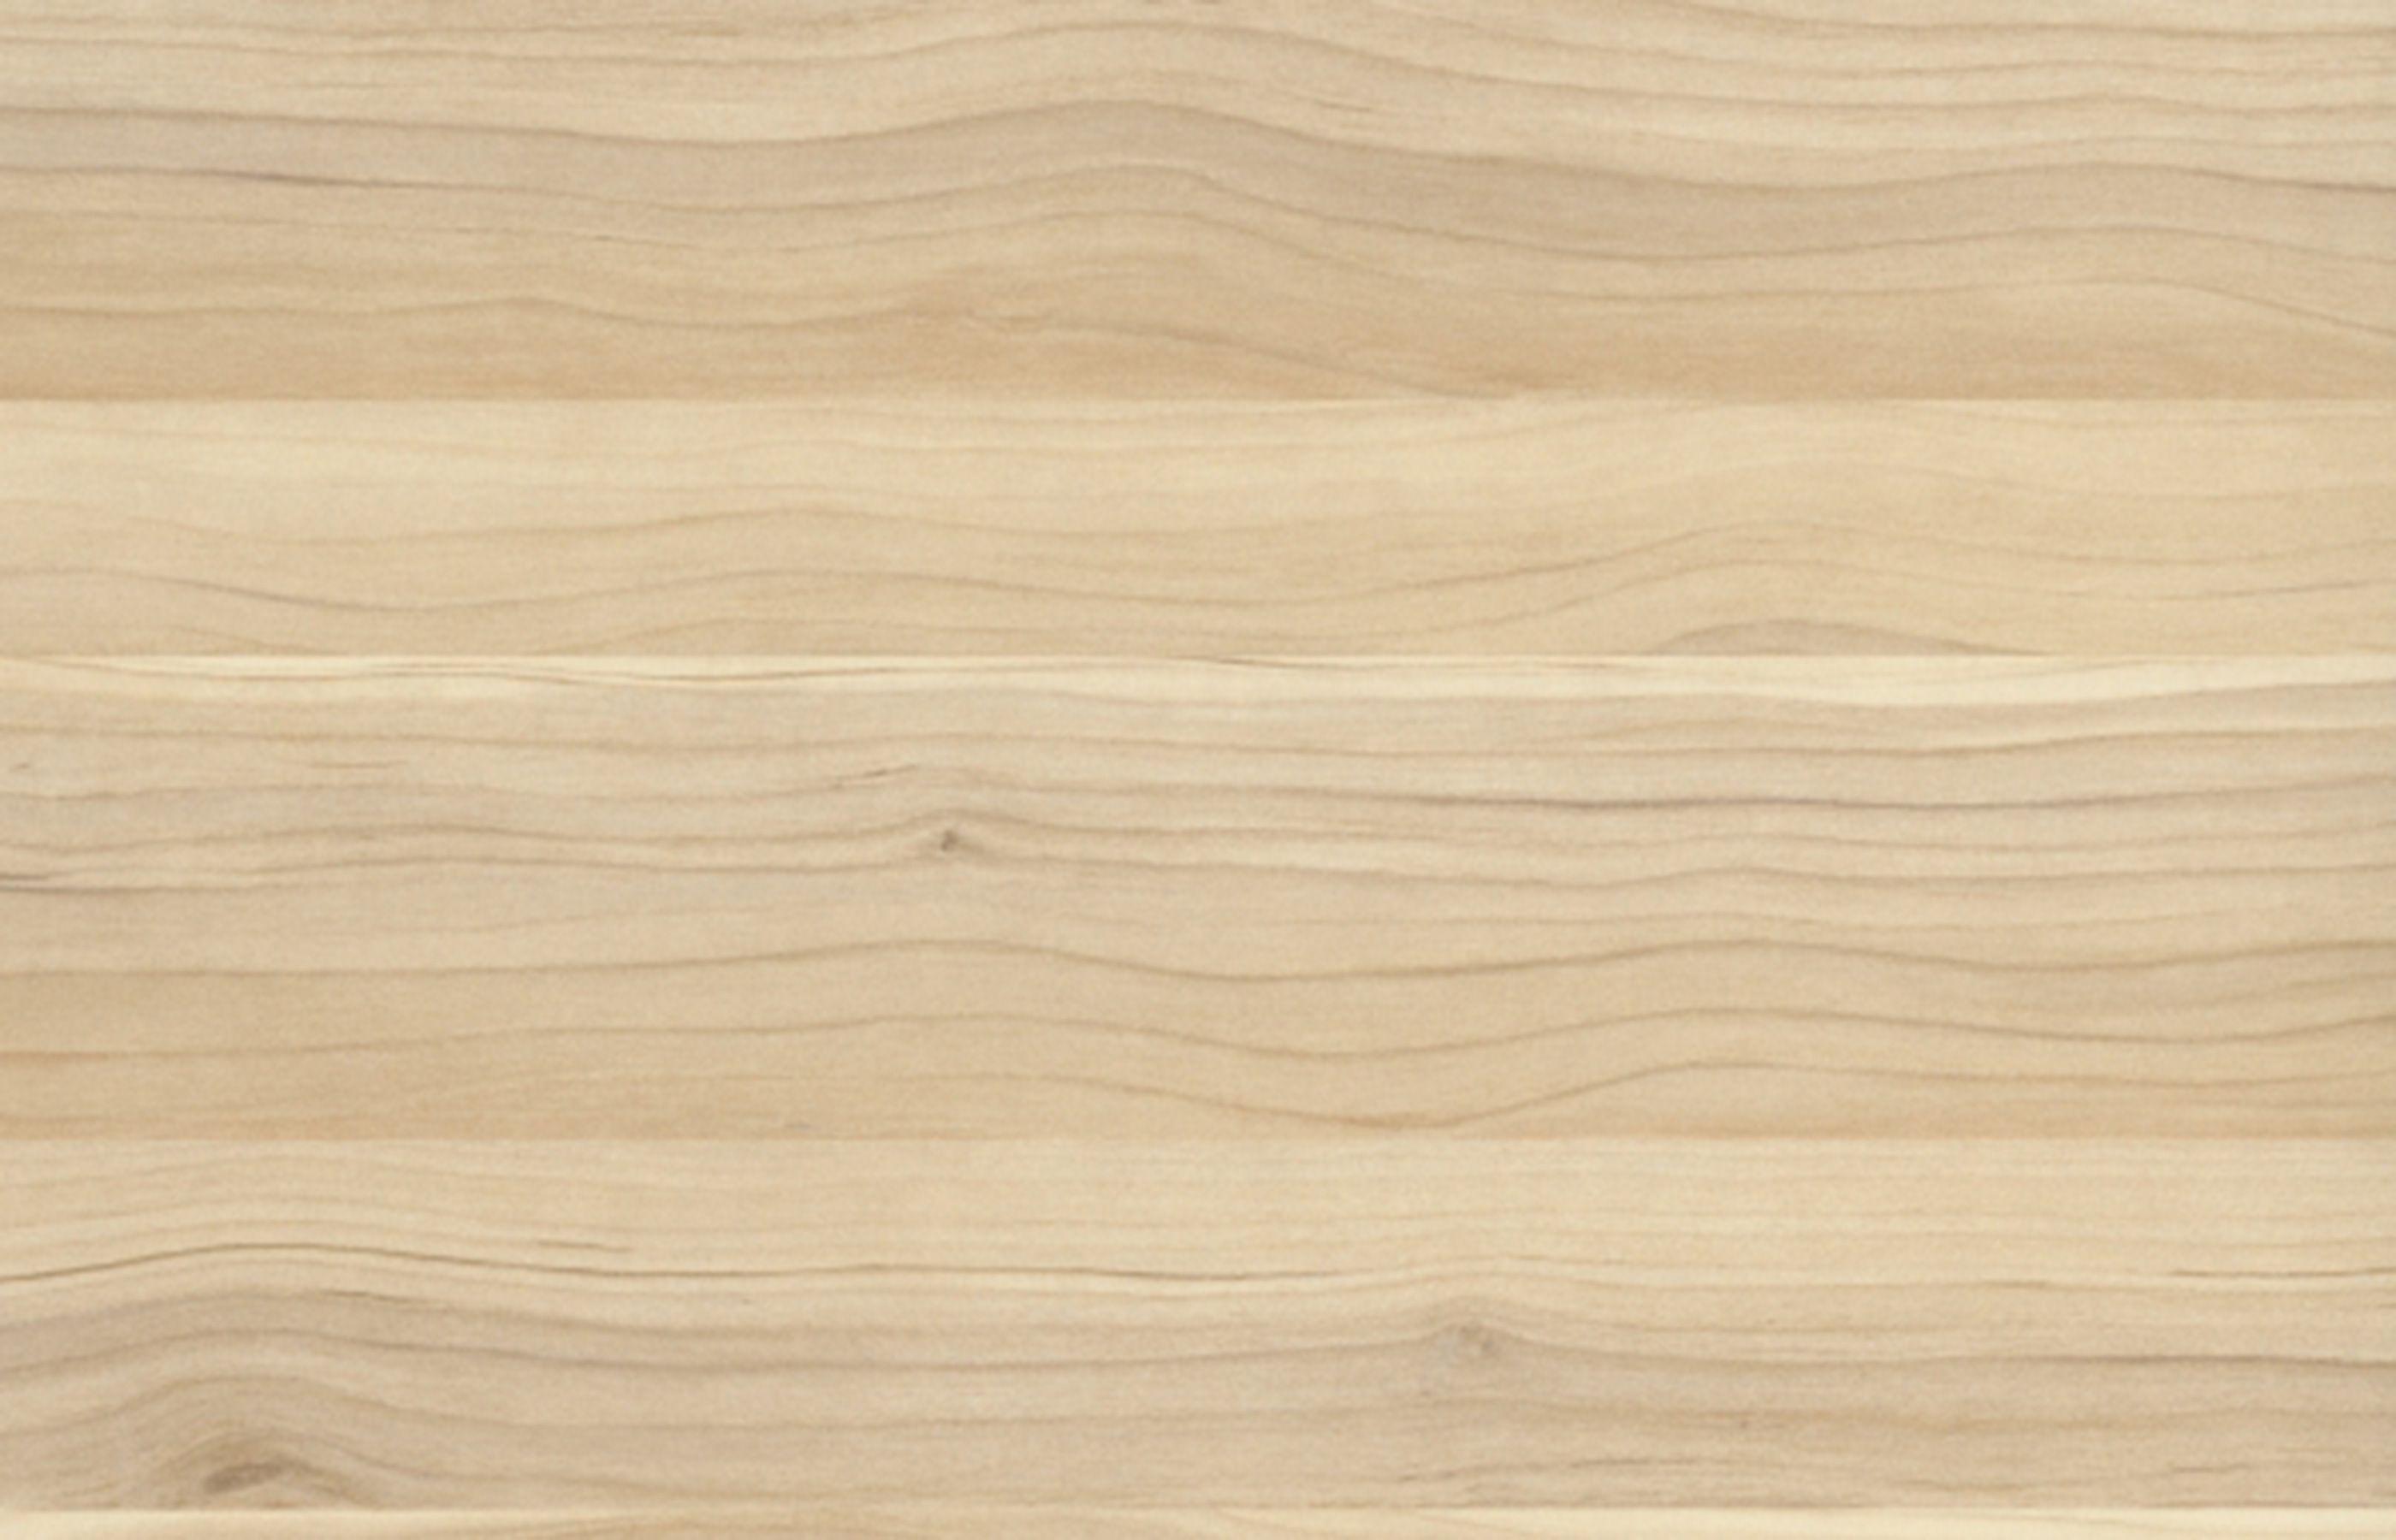 Image Result For American Ash Texture 2019